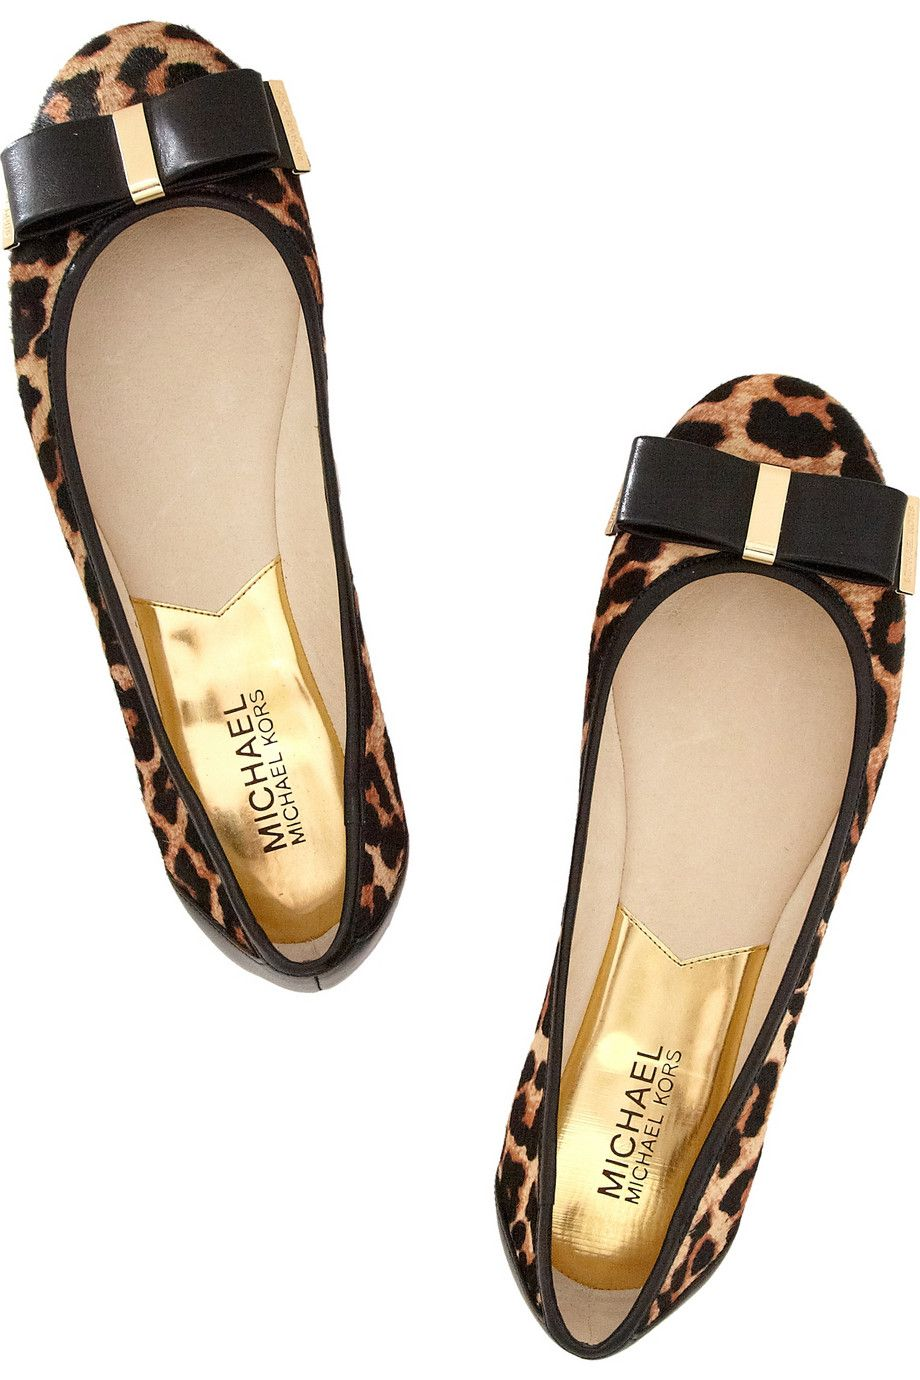 Ballet Flats Ballerina Shoes for Women On Sale, Fulton Moc, Leopard, Fur, 2017, 4 Michael Kors